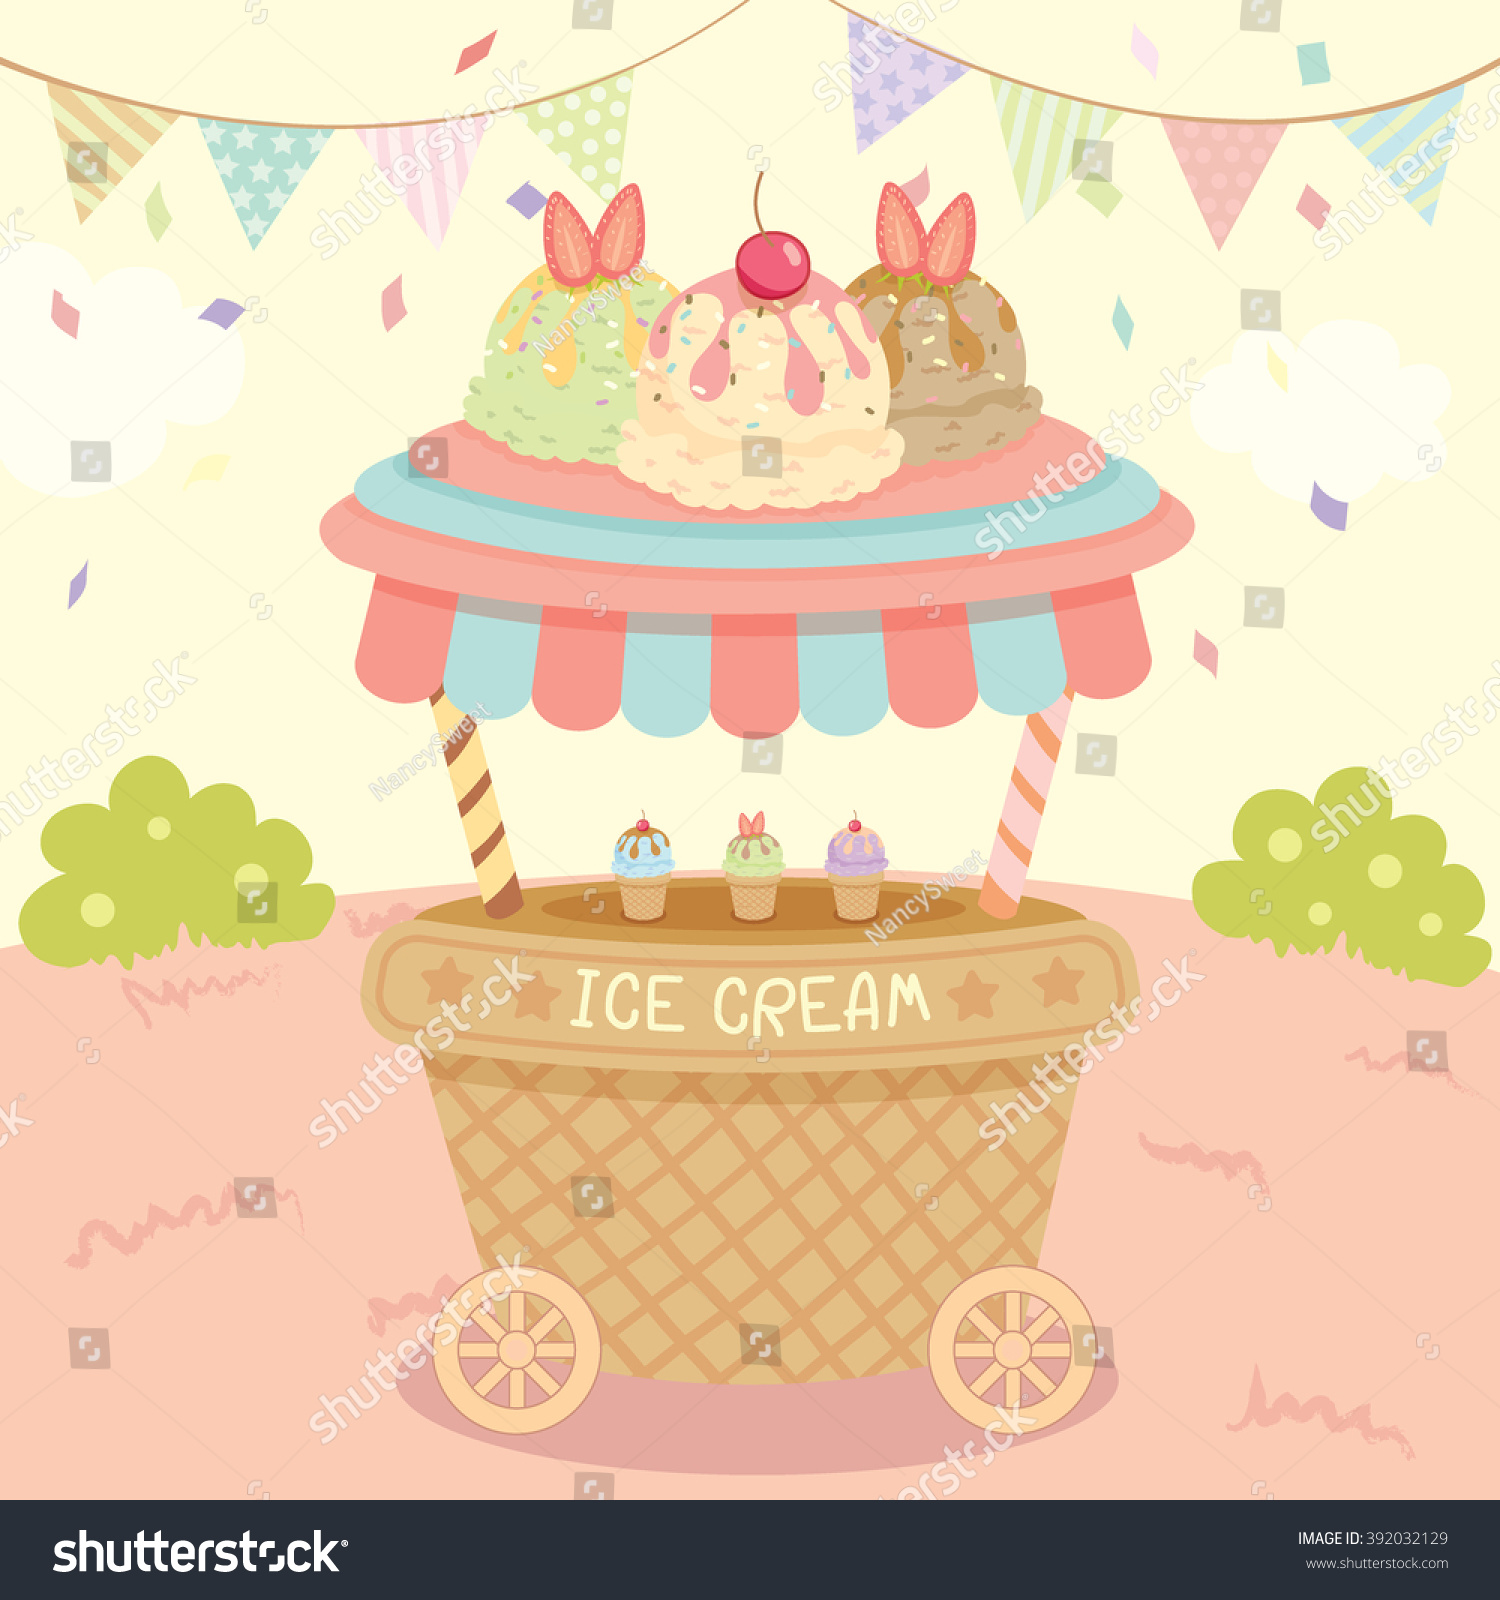 Background Of Cute Ice Cream With Phrase Vector: Vector Ice Cream Push Cart On Stock Vector 392032129